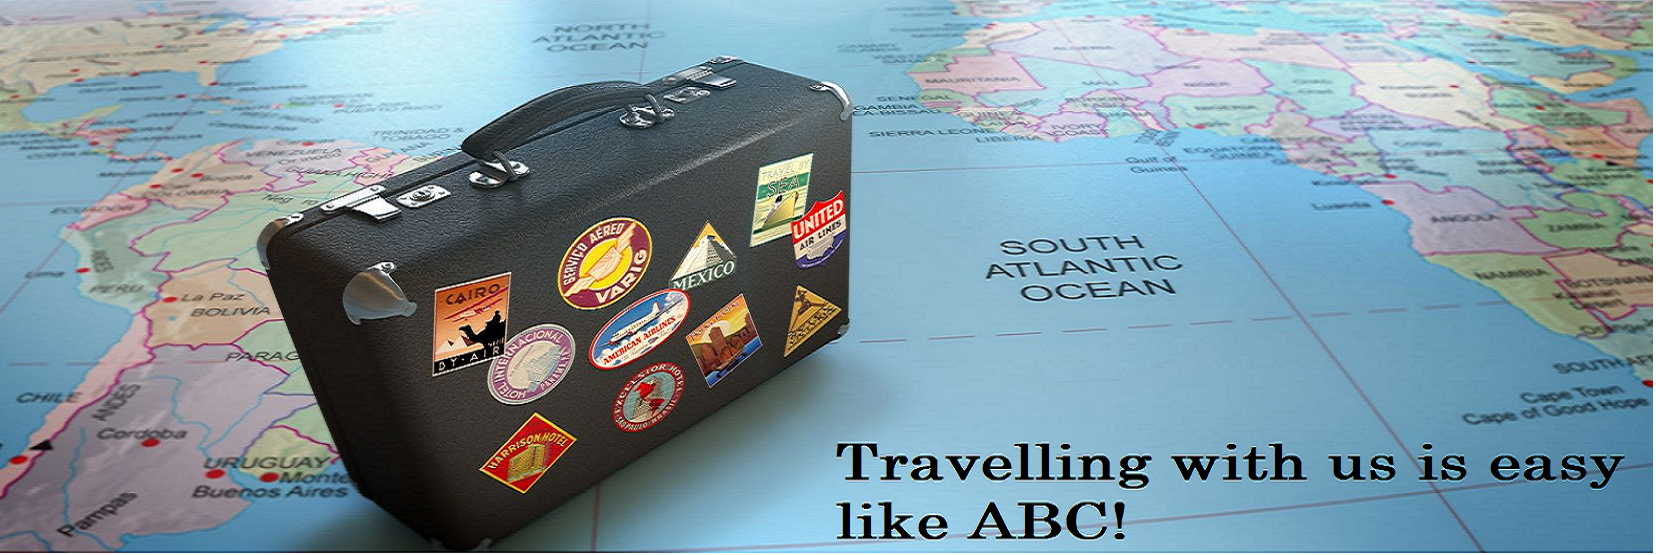 Travelling with us is easy like ABC!